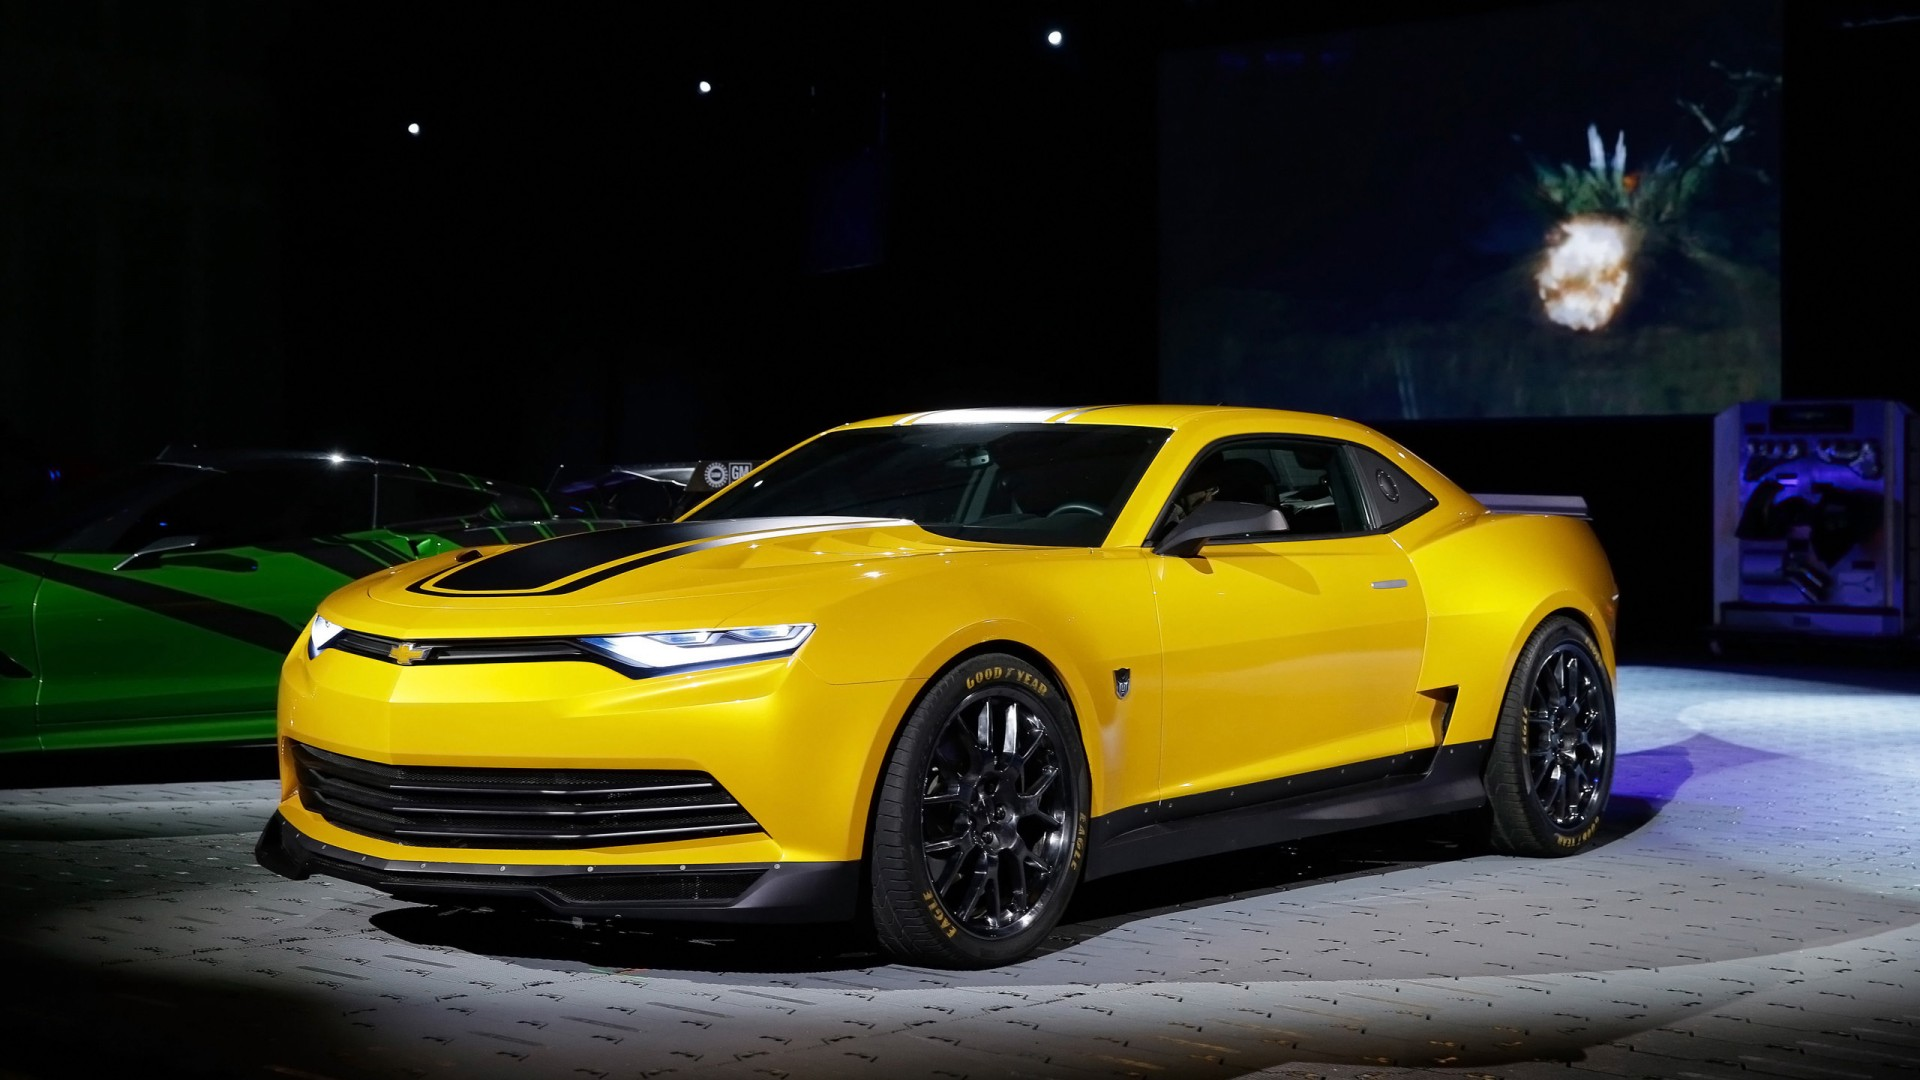 2013 Chevrolet Camaro Concept Sema Wallpaper Hd Car